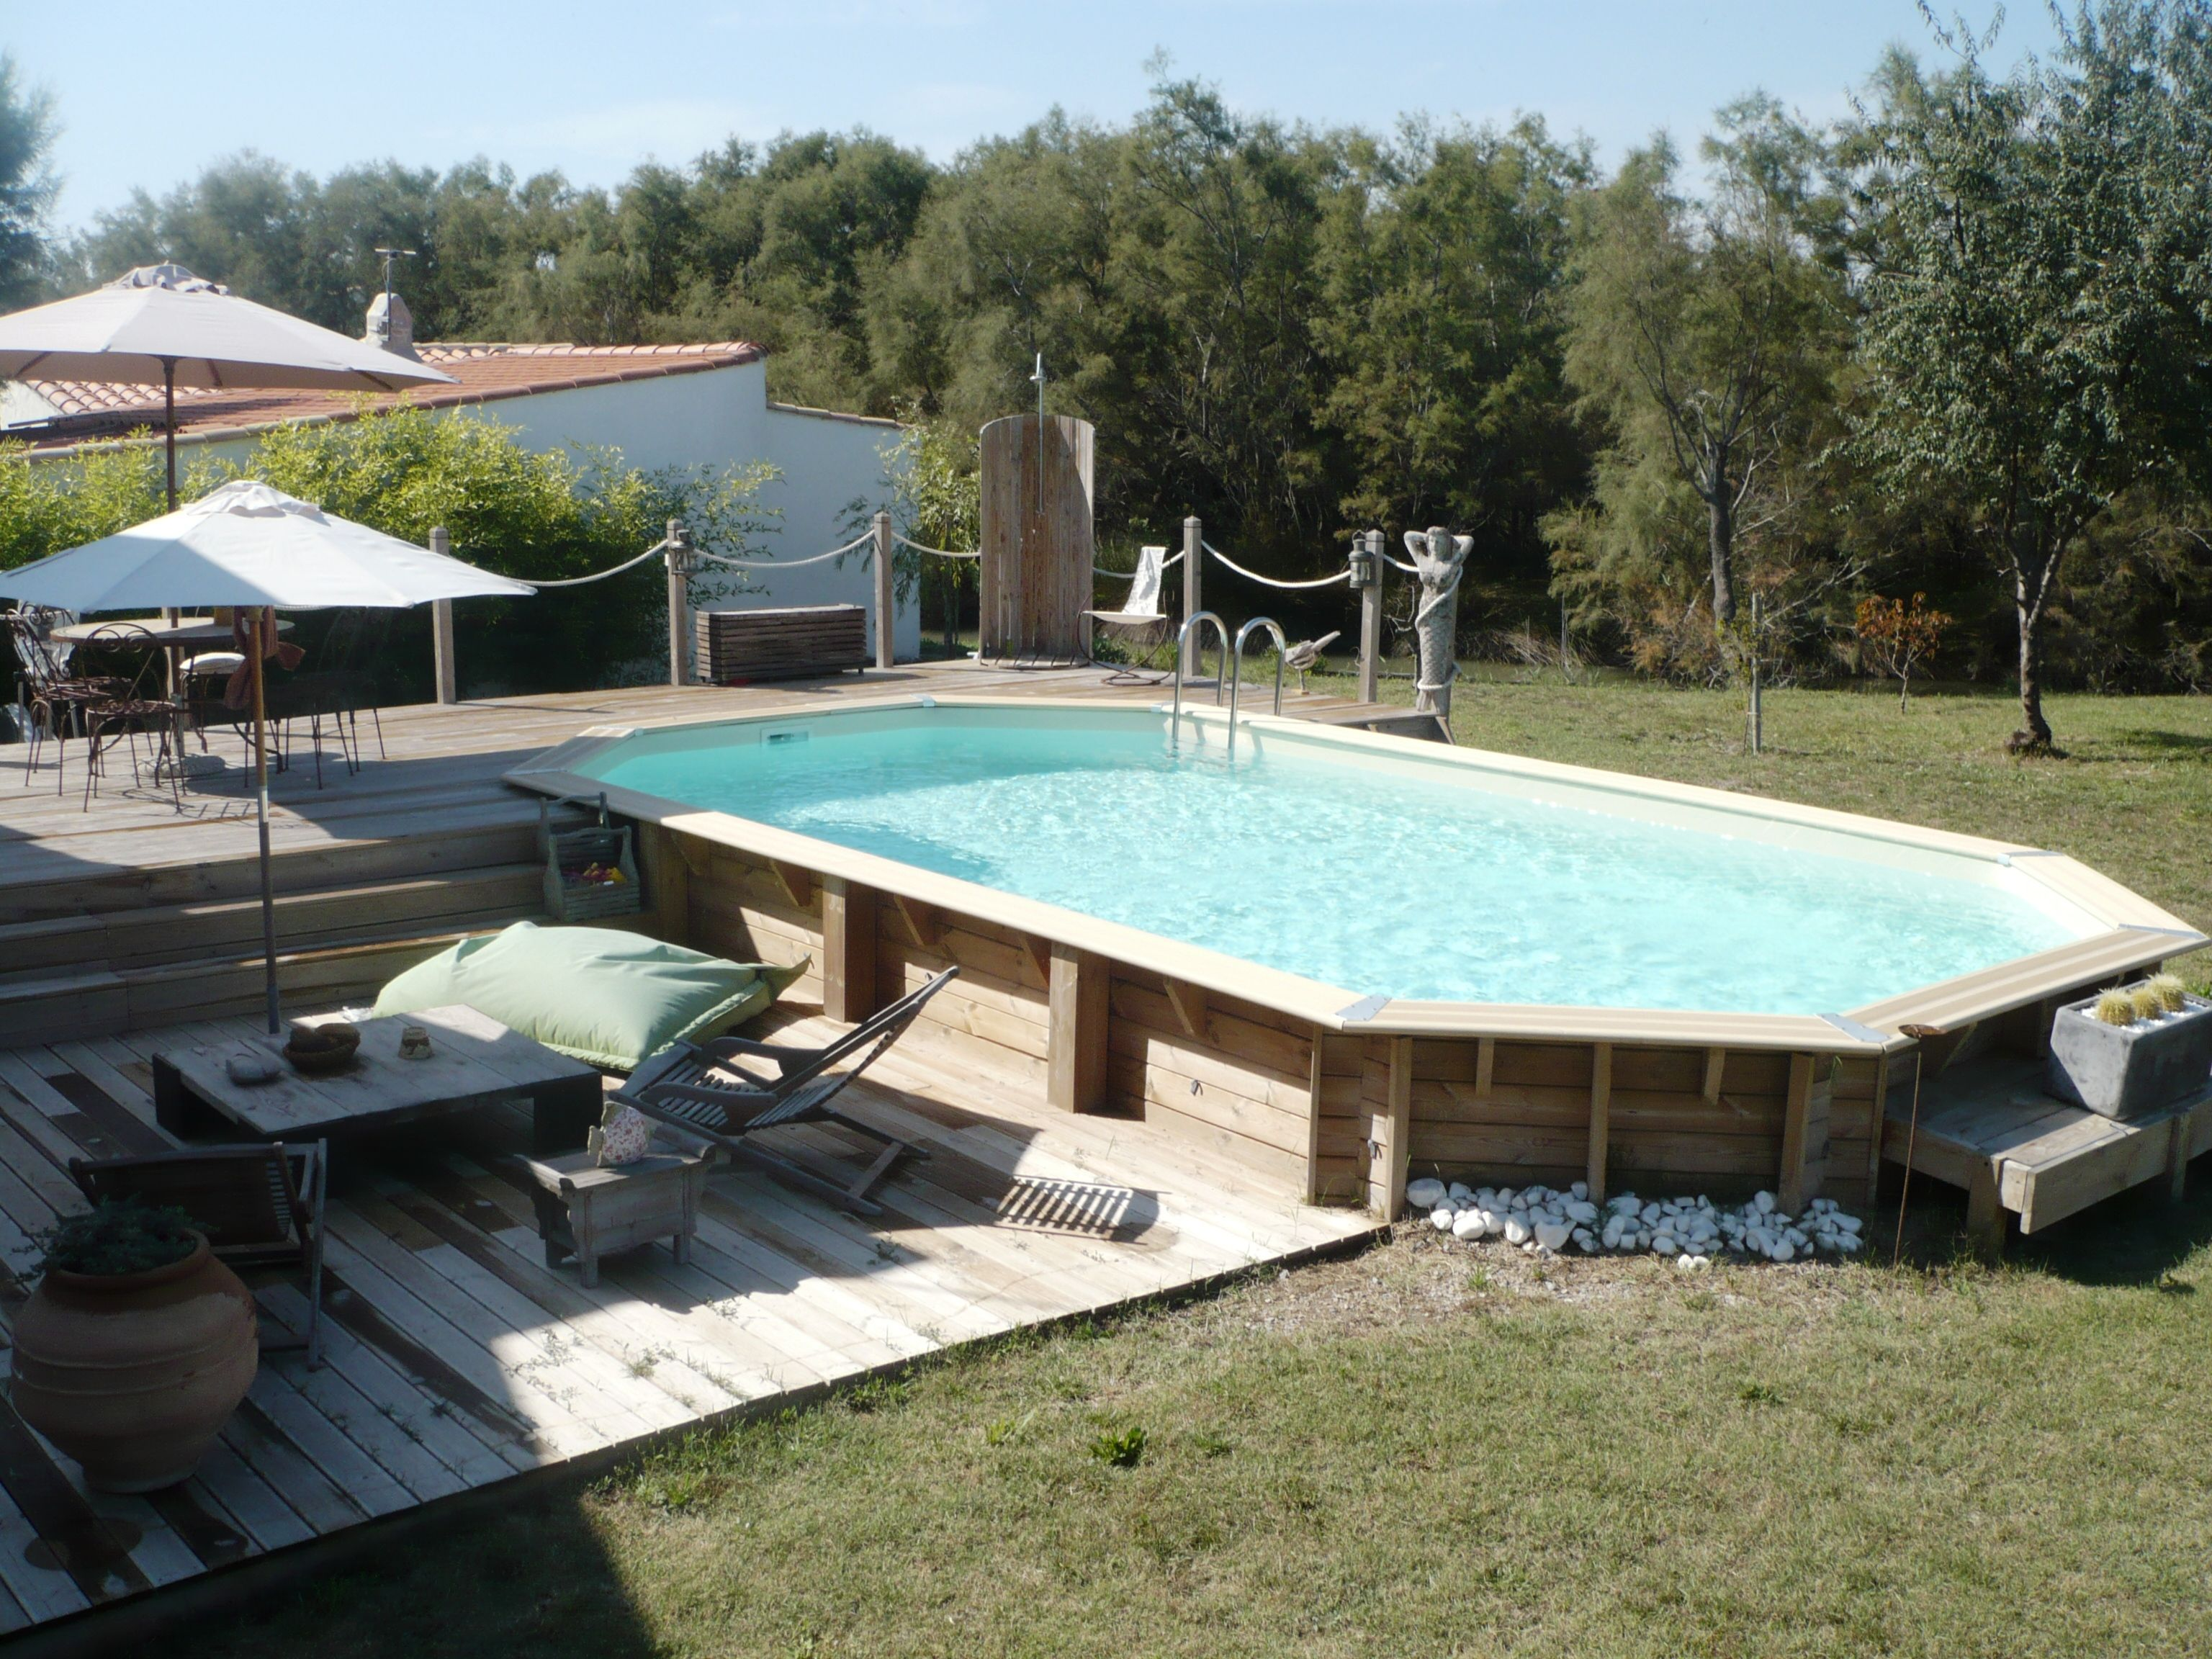 Terrasse piscine semi enterree home sweet home for Piscine hors sol beton castorama